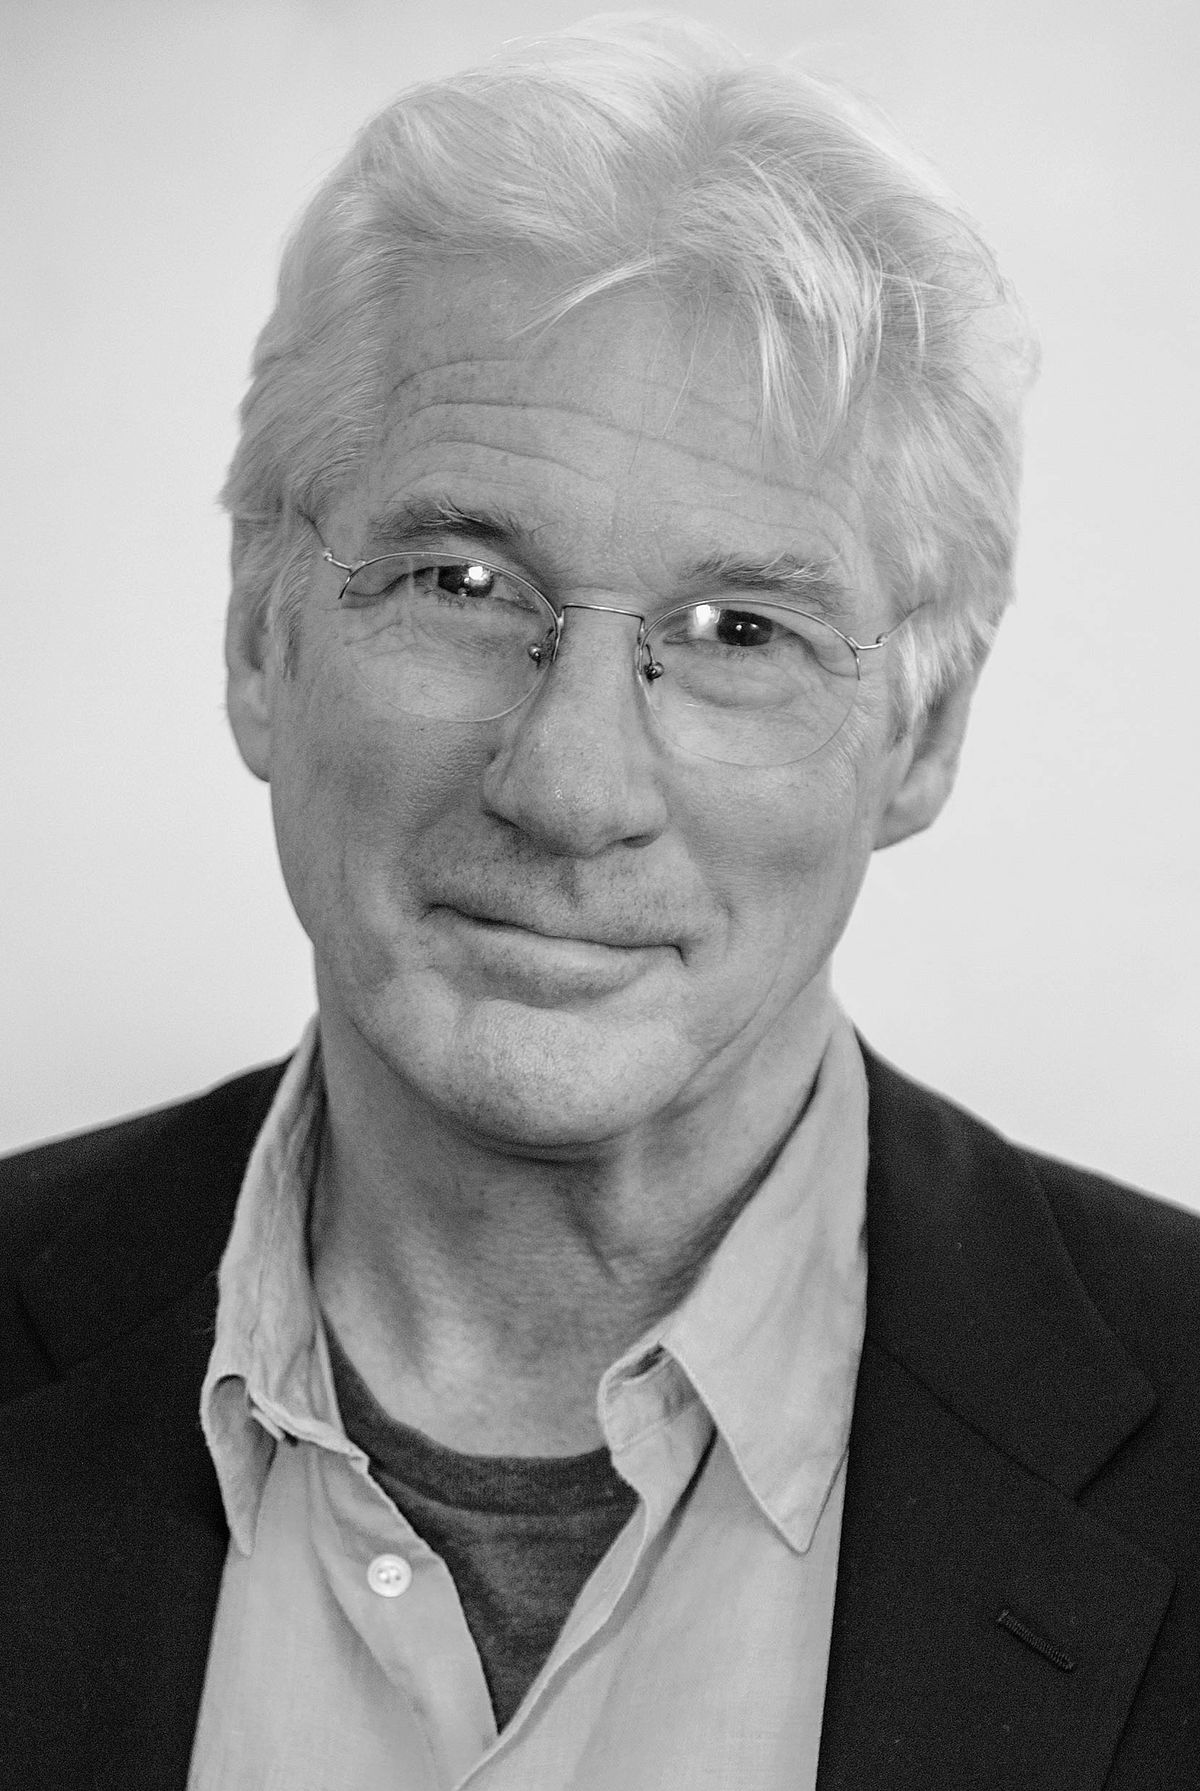 richard gere - photo #10